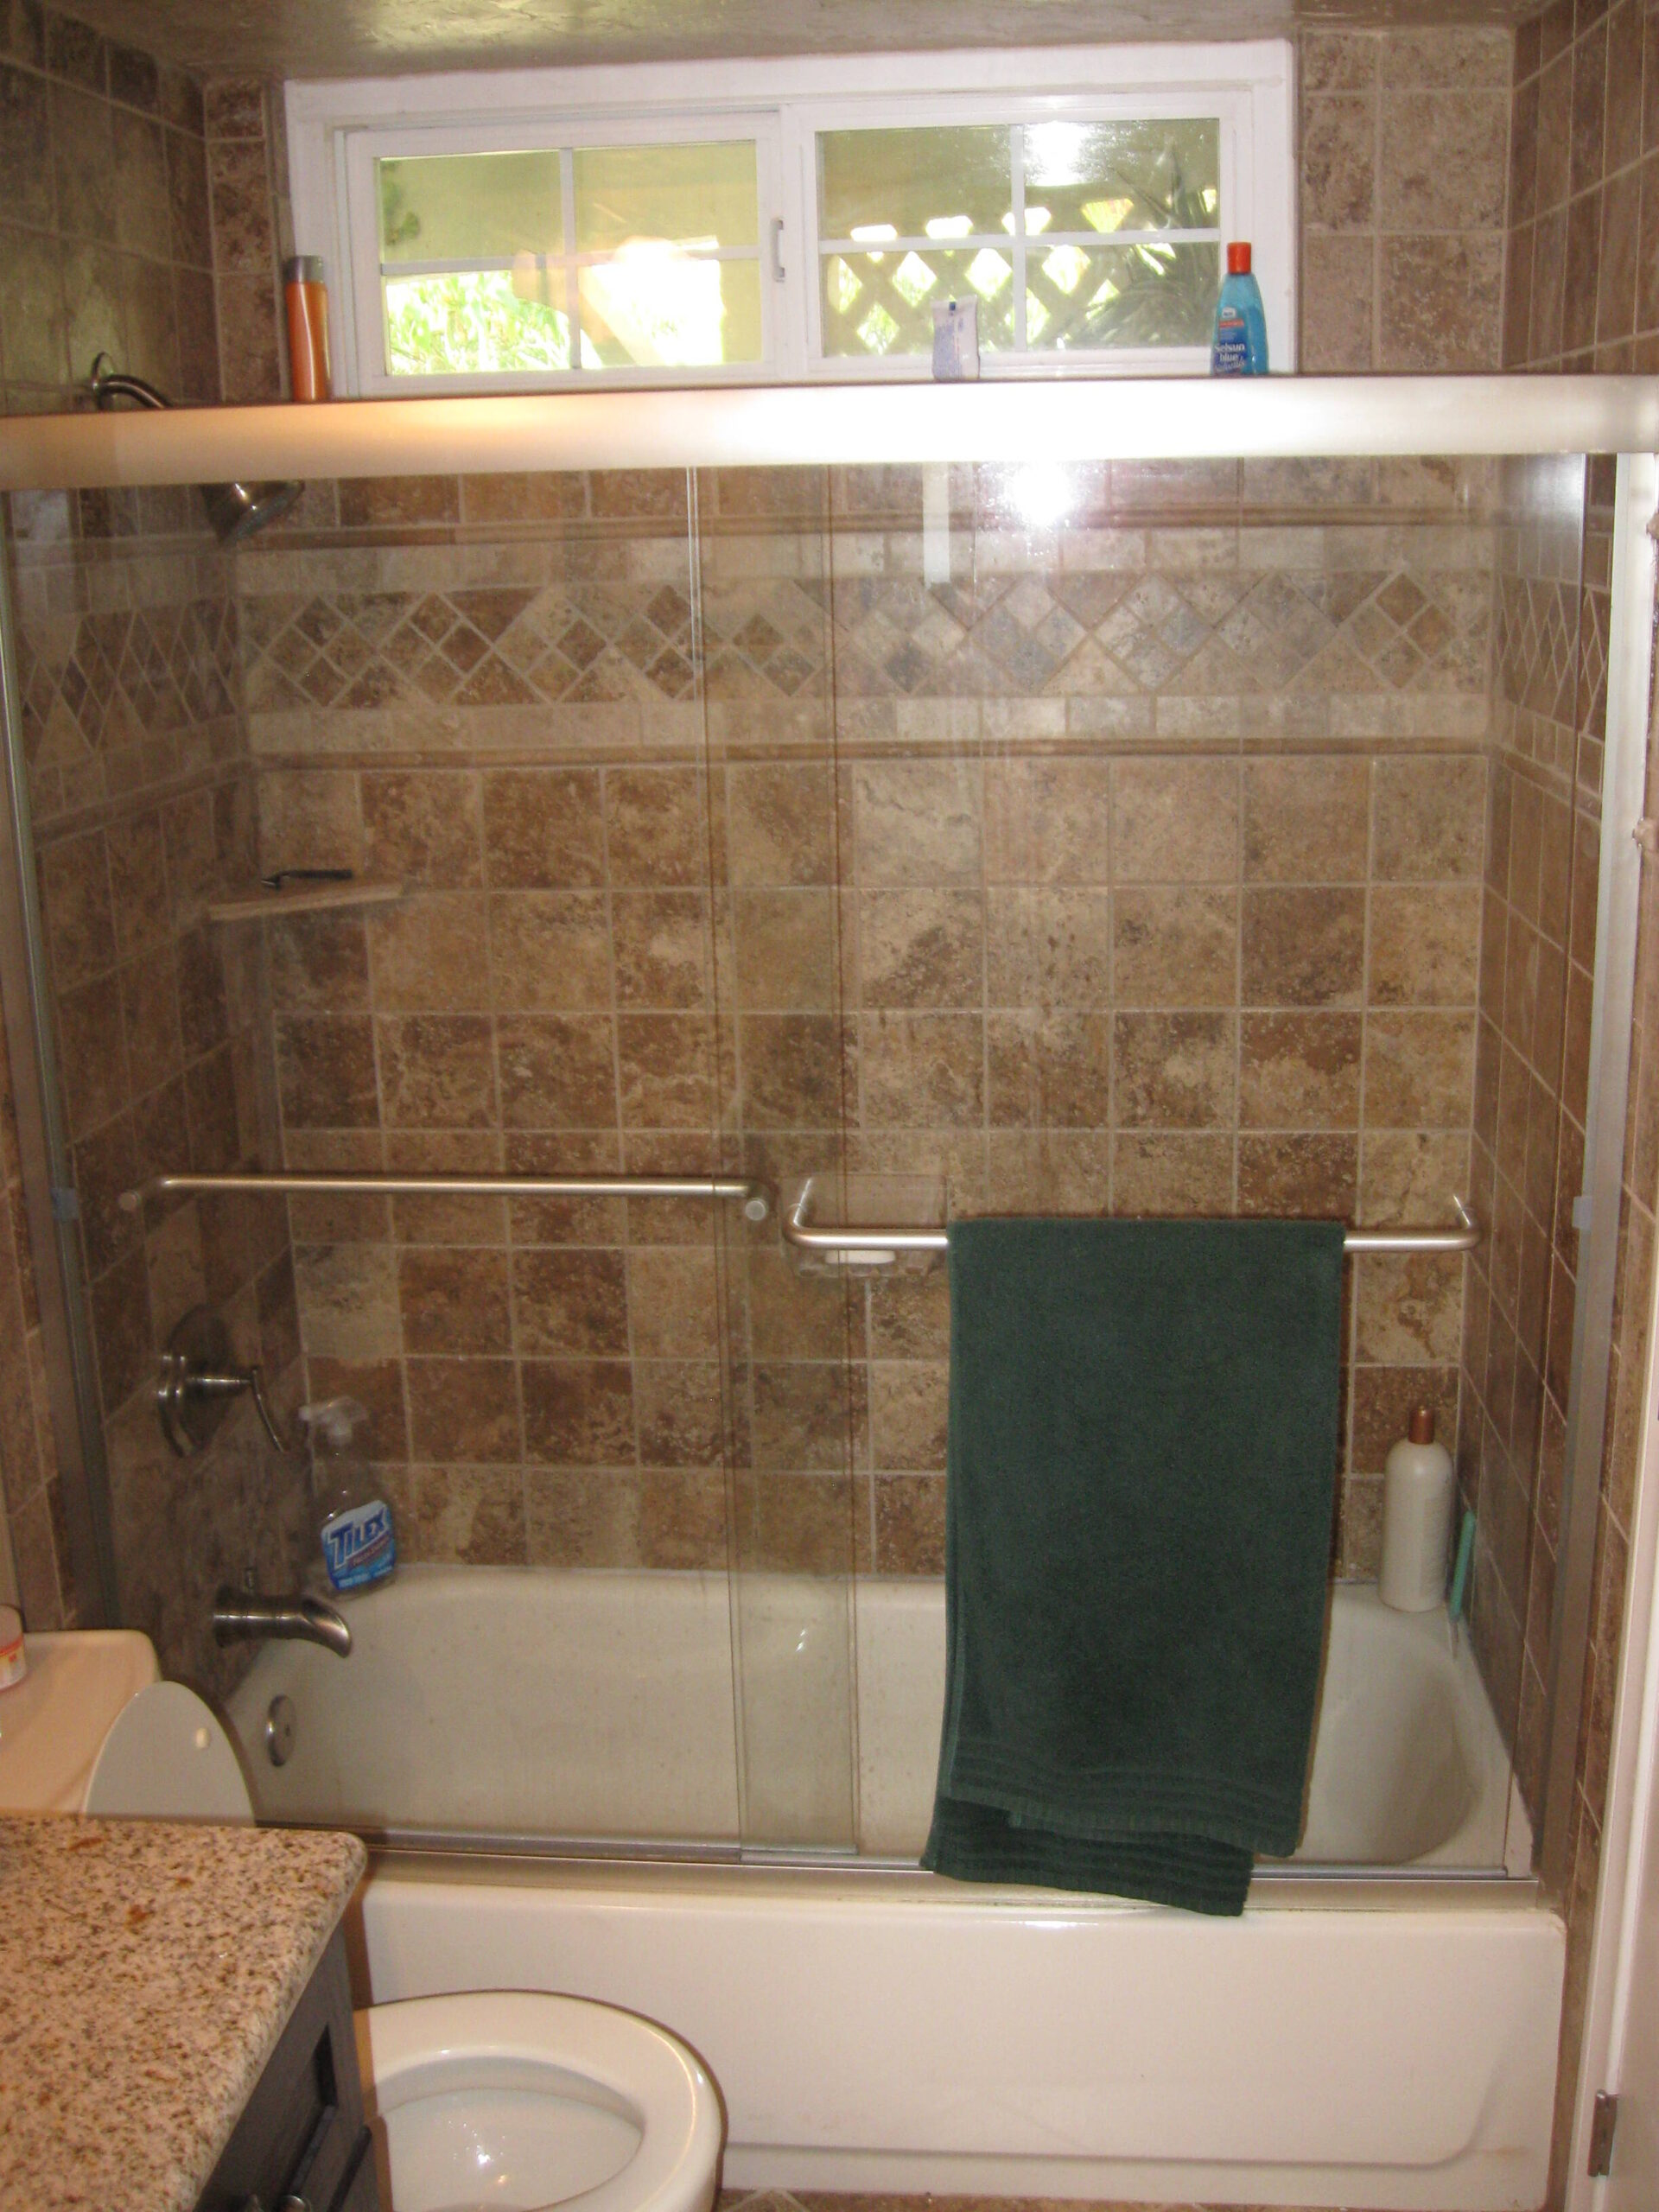 Inspirational Bathtub Repair Kit Gallery Of Bathtub Idea